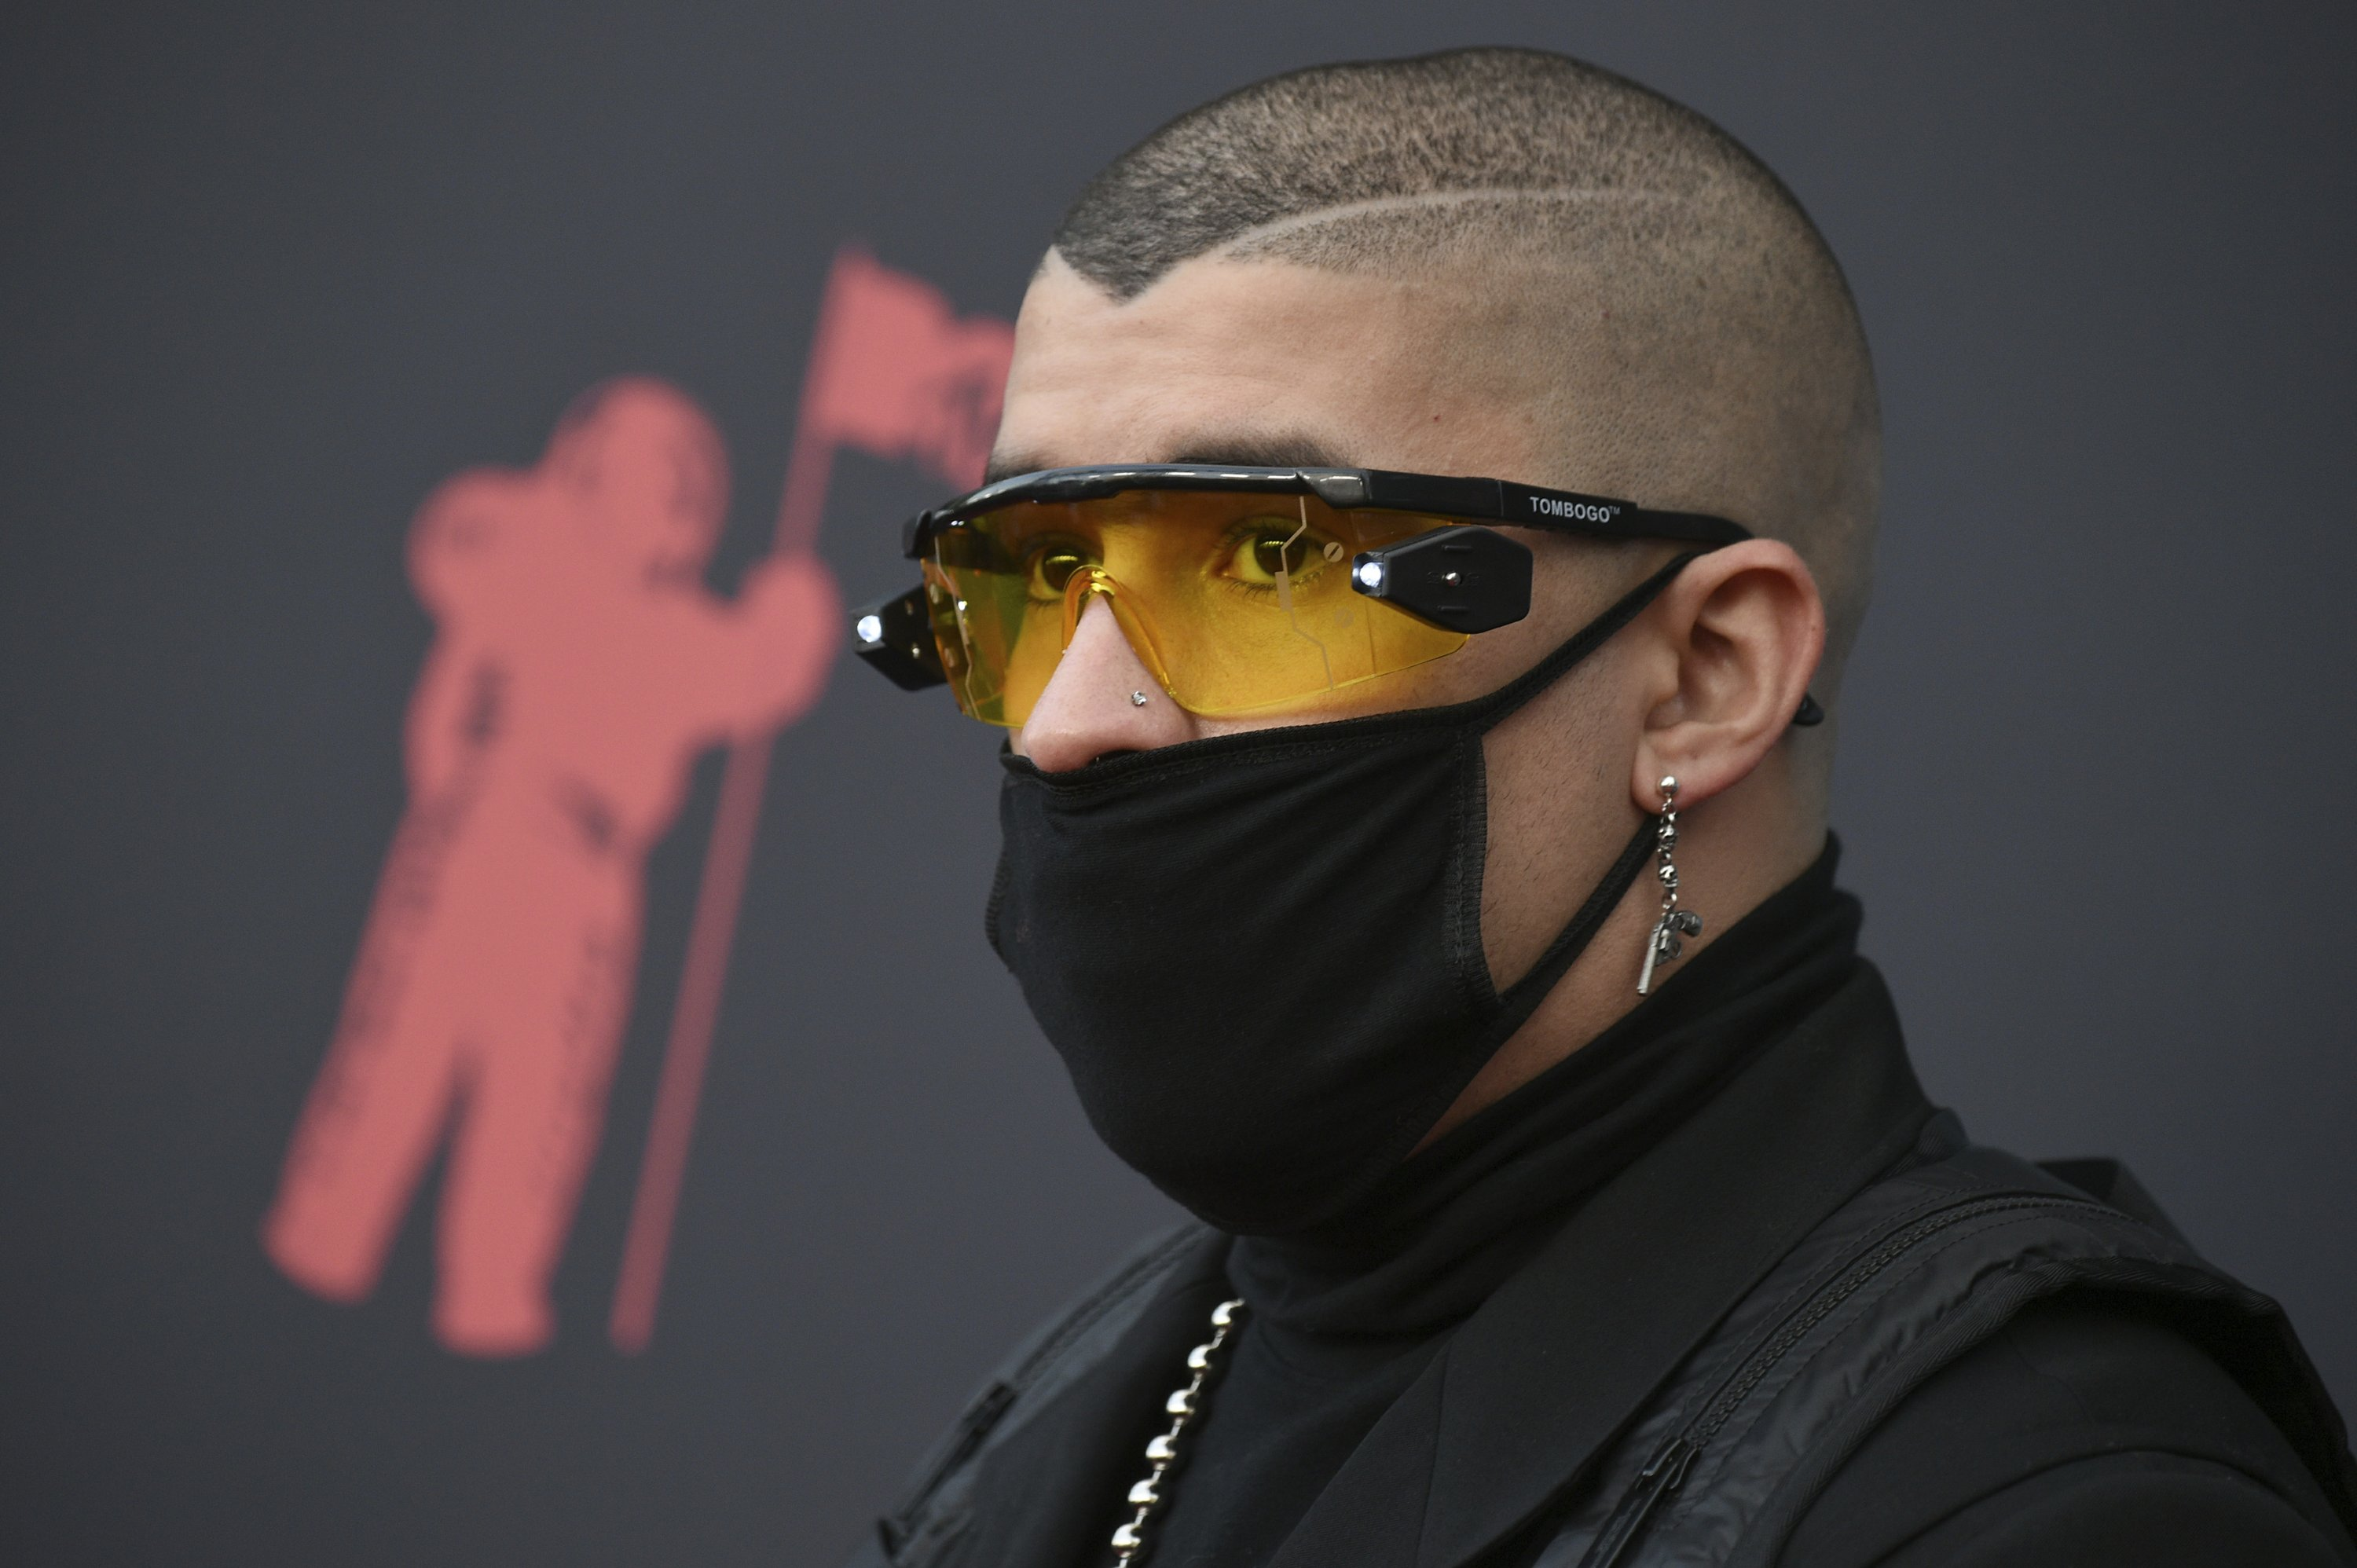 NEW YORK (AP) - Bad Bunny, Romeo Santos and Daddy Yankee are among the winners of the 2020 ASCAP Latin Music Awards. The American Society of Composers